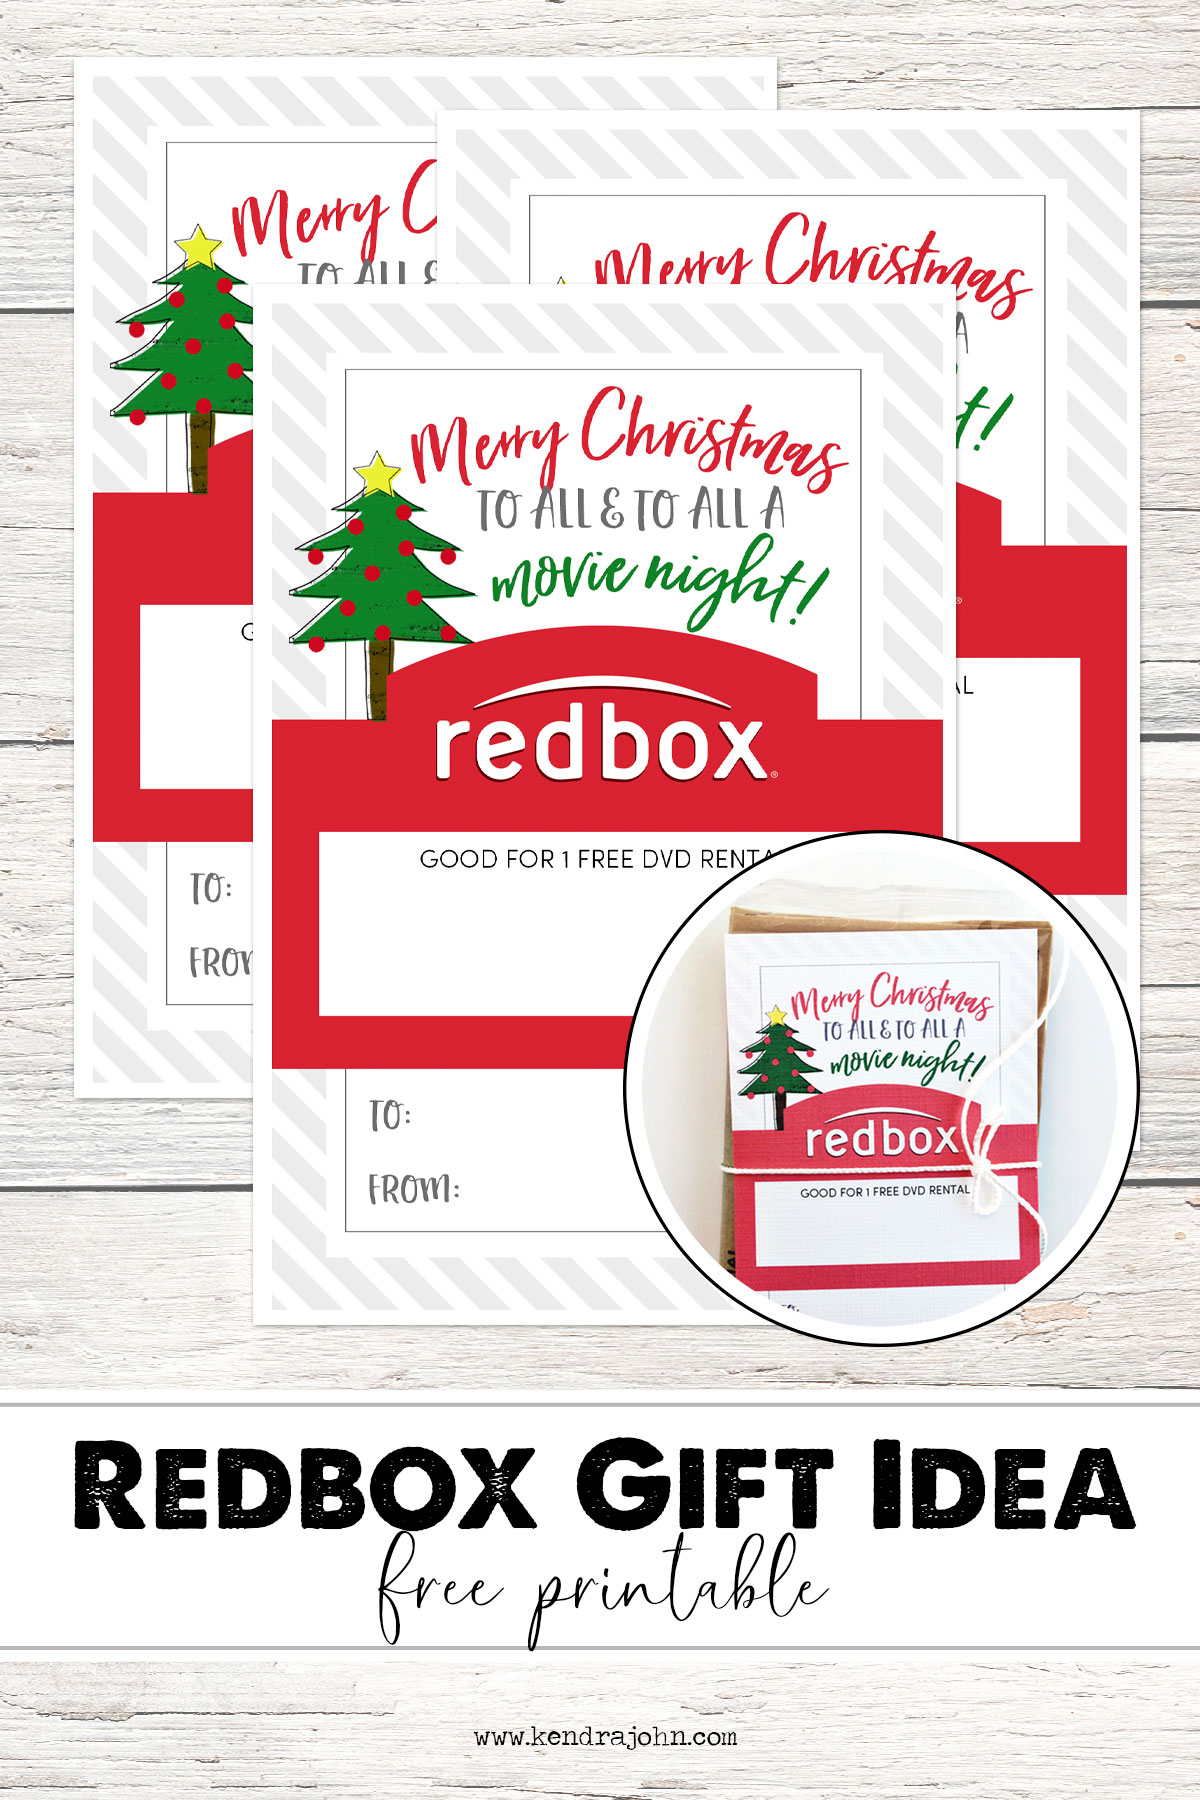 image relating to Redbox Printable named Redbox Xmas Present Principle - Magic formula Lime Electronic Programs